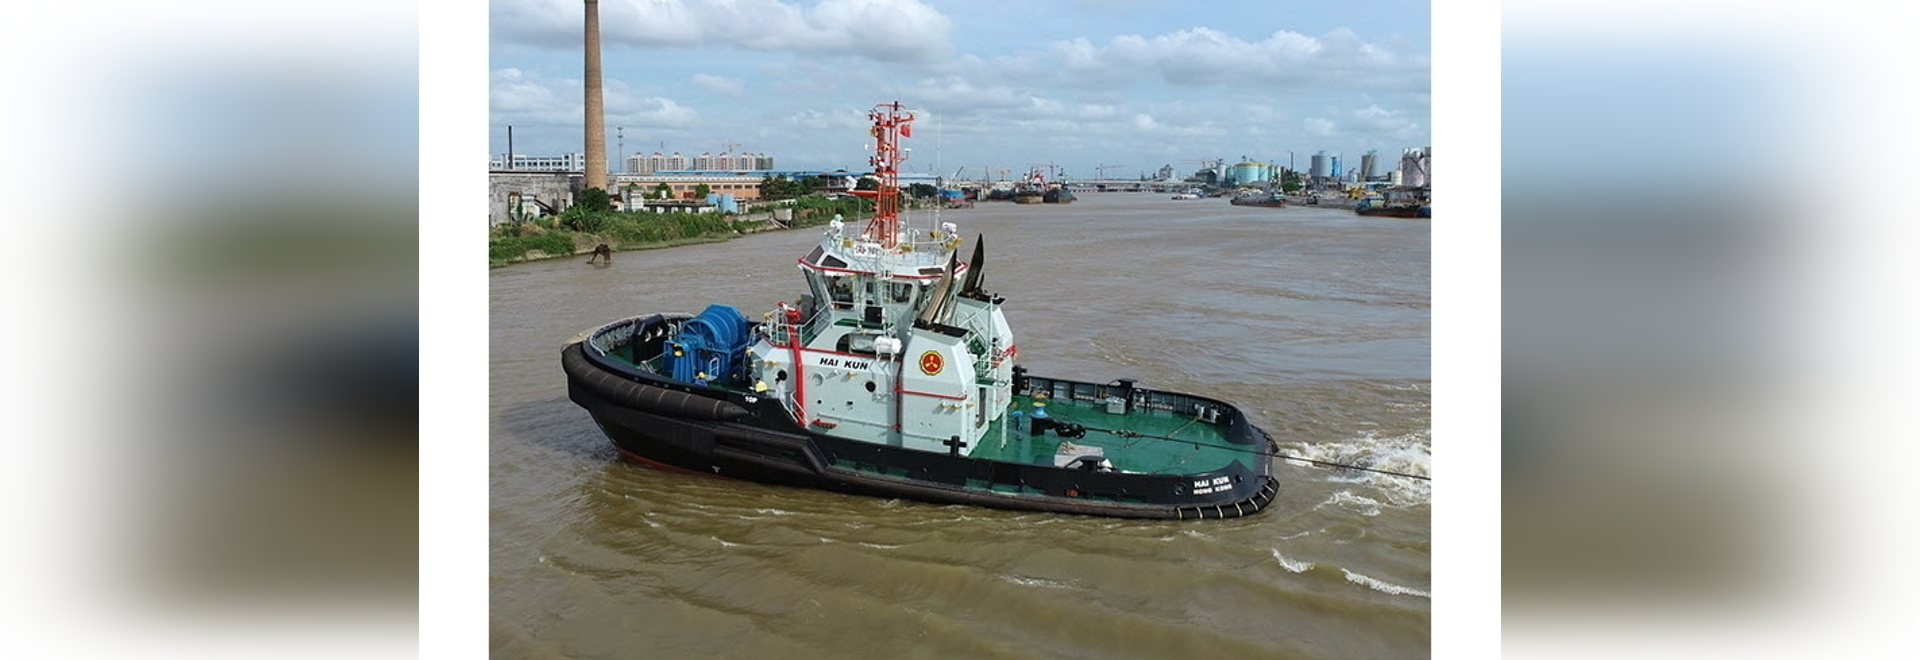 On sea trials, tug delivered a bollard pull of 88 metric tonnes